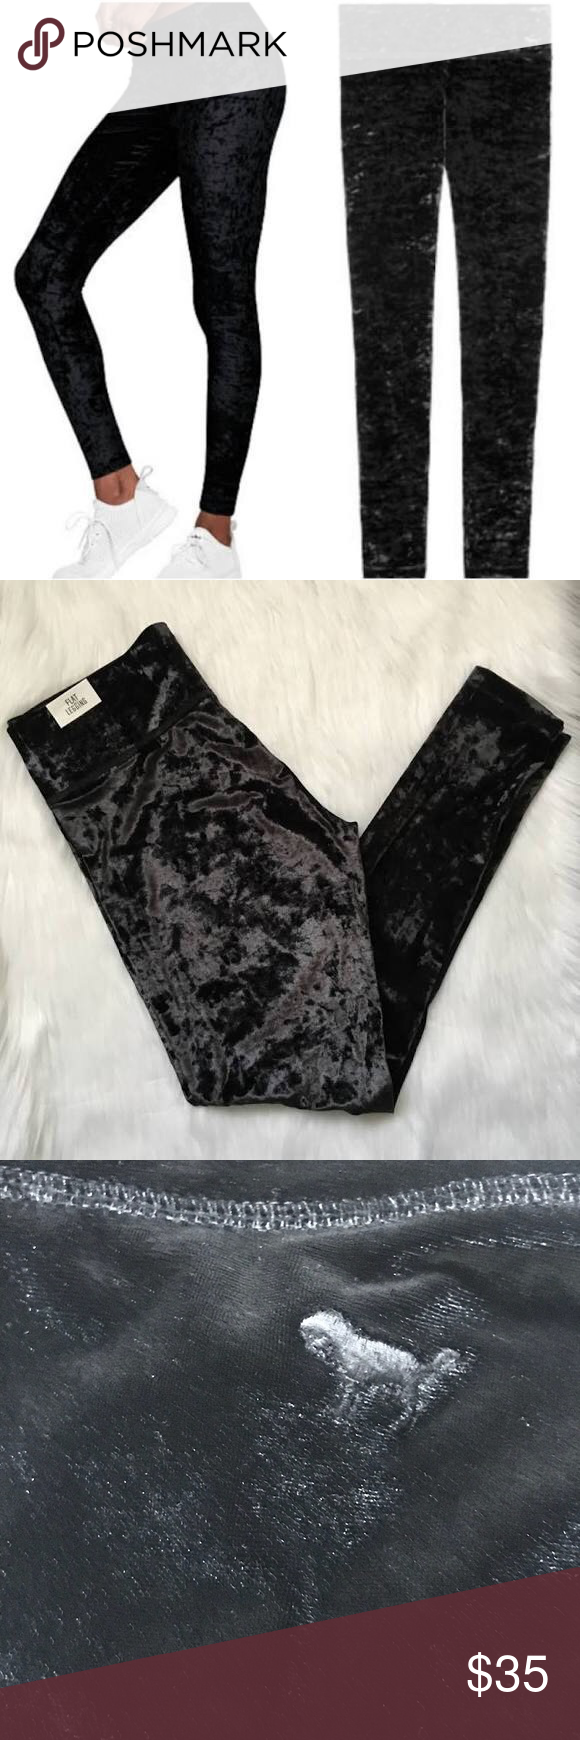 a8123ecefec19 Victoria Secret Pink Velvet Leggings sz S Pink Victorias Secret Black Velour  Leggings Size Small,